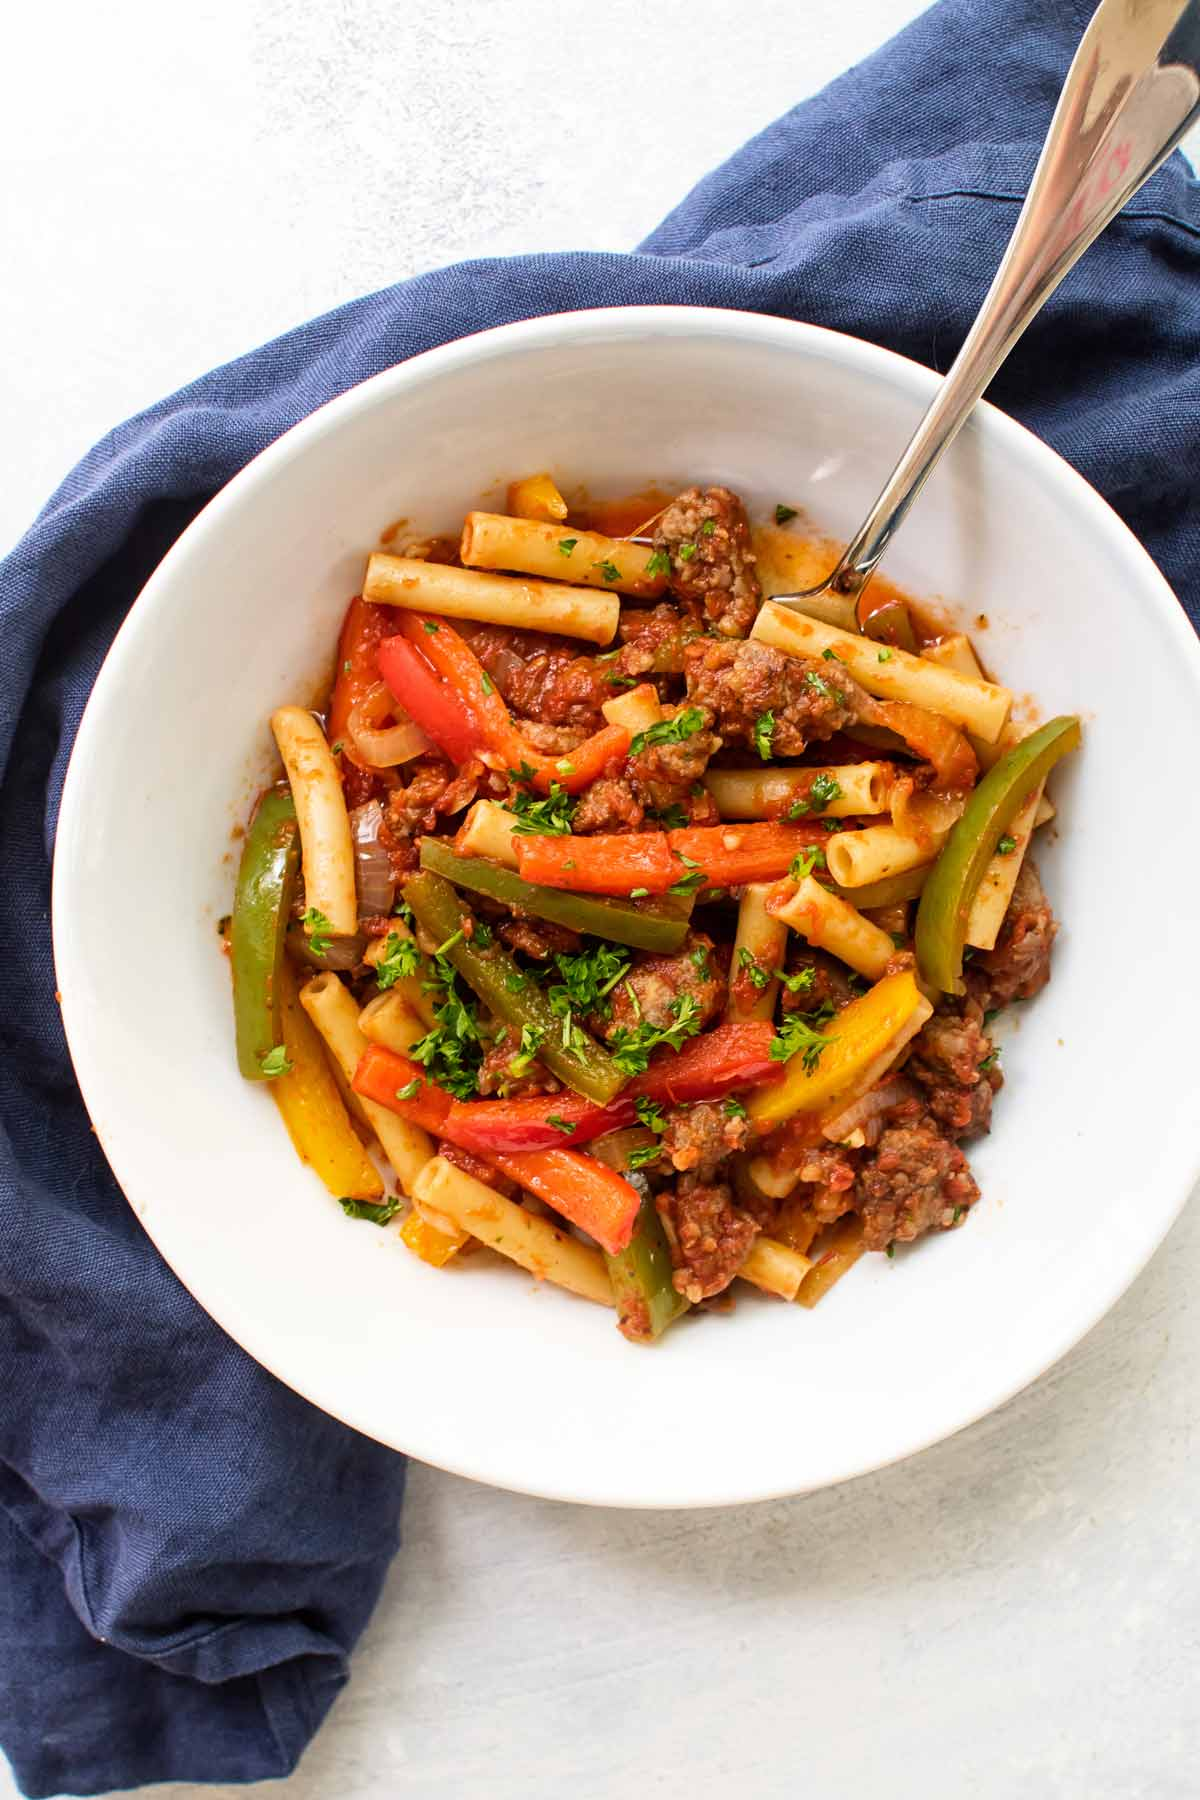 a bowl of pasta with sausage and peppers.